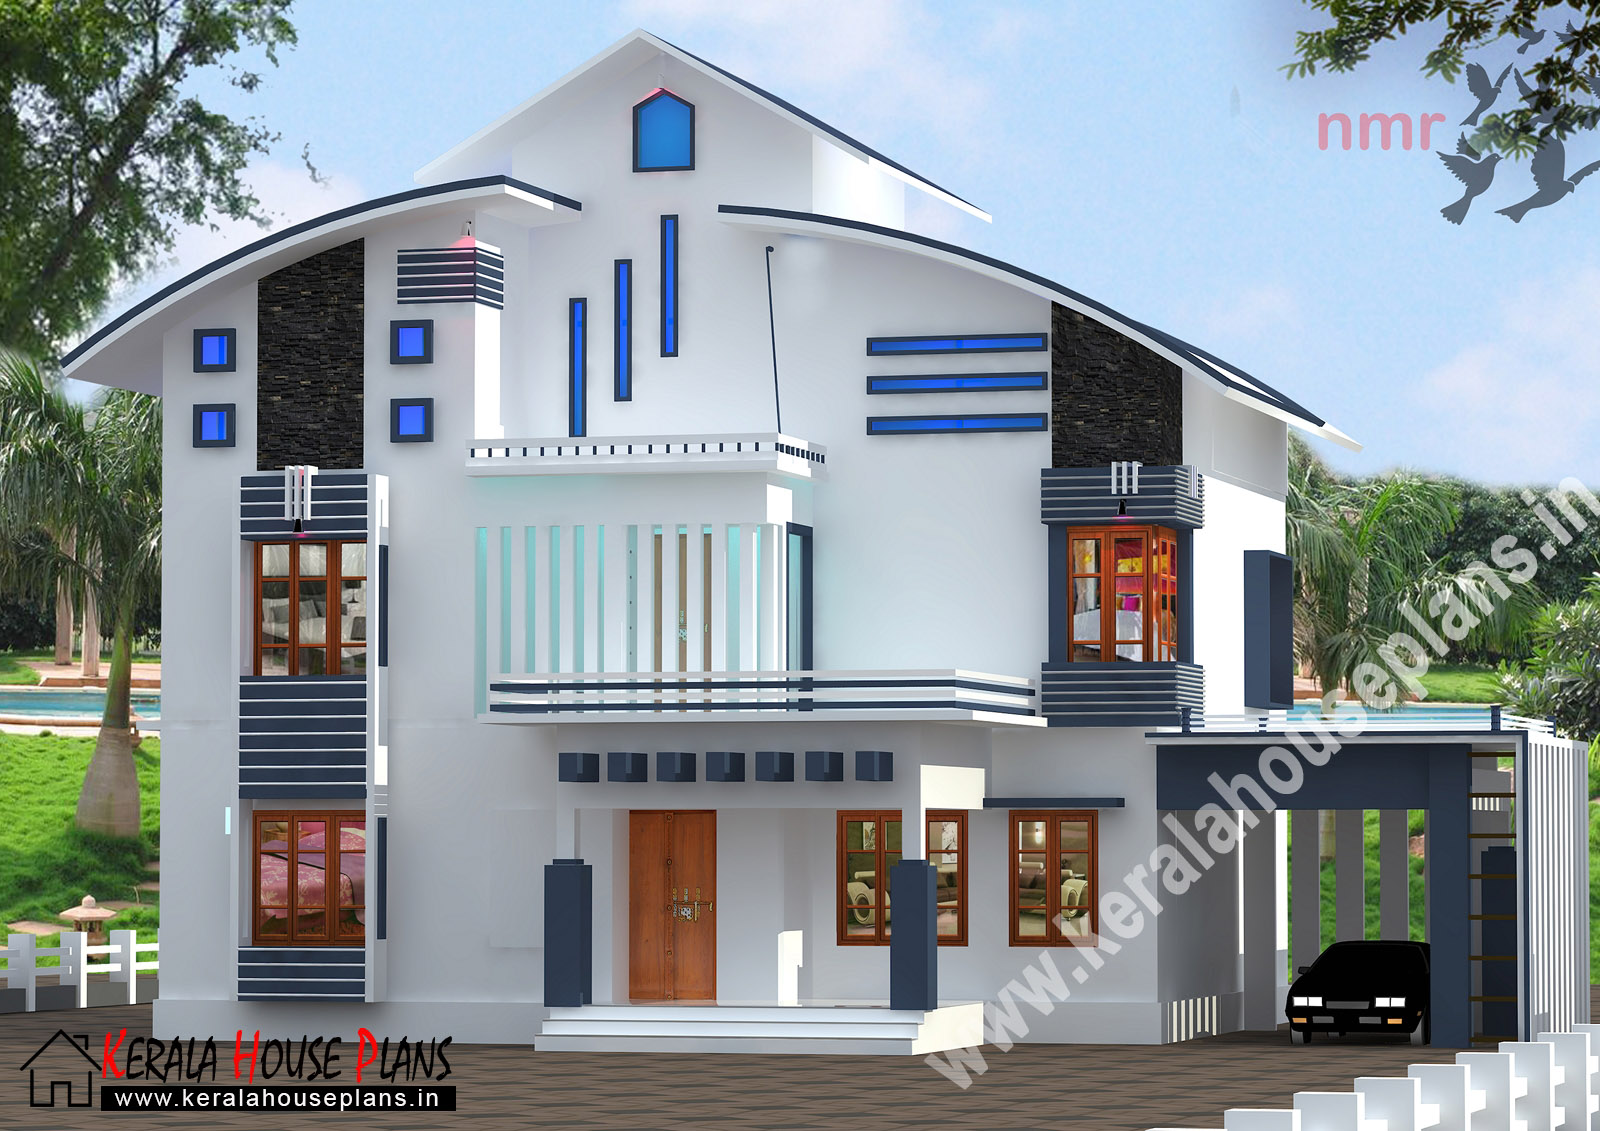 Kerala house plans and designs for Au maison online shop